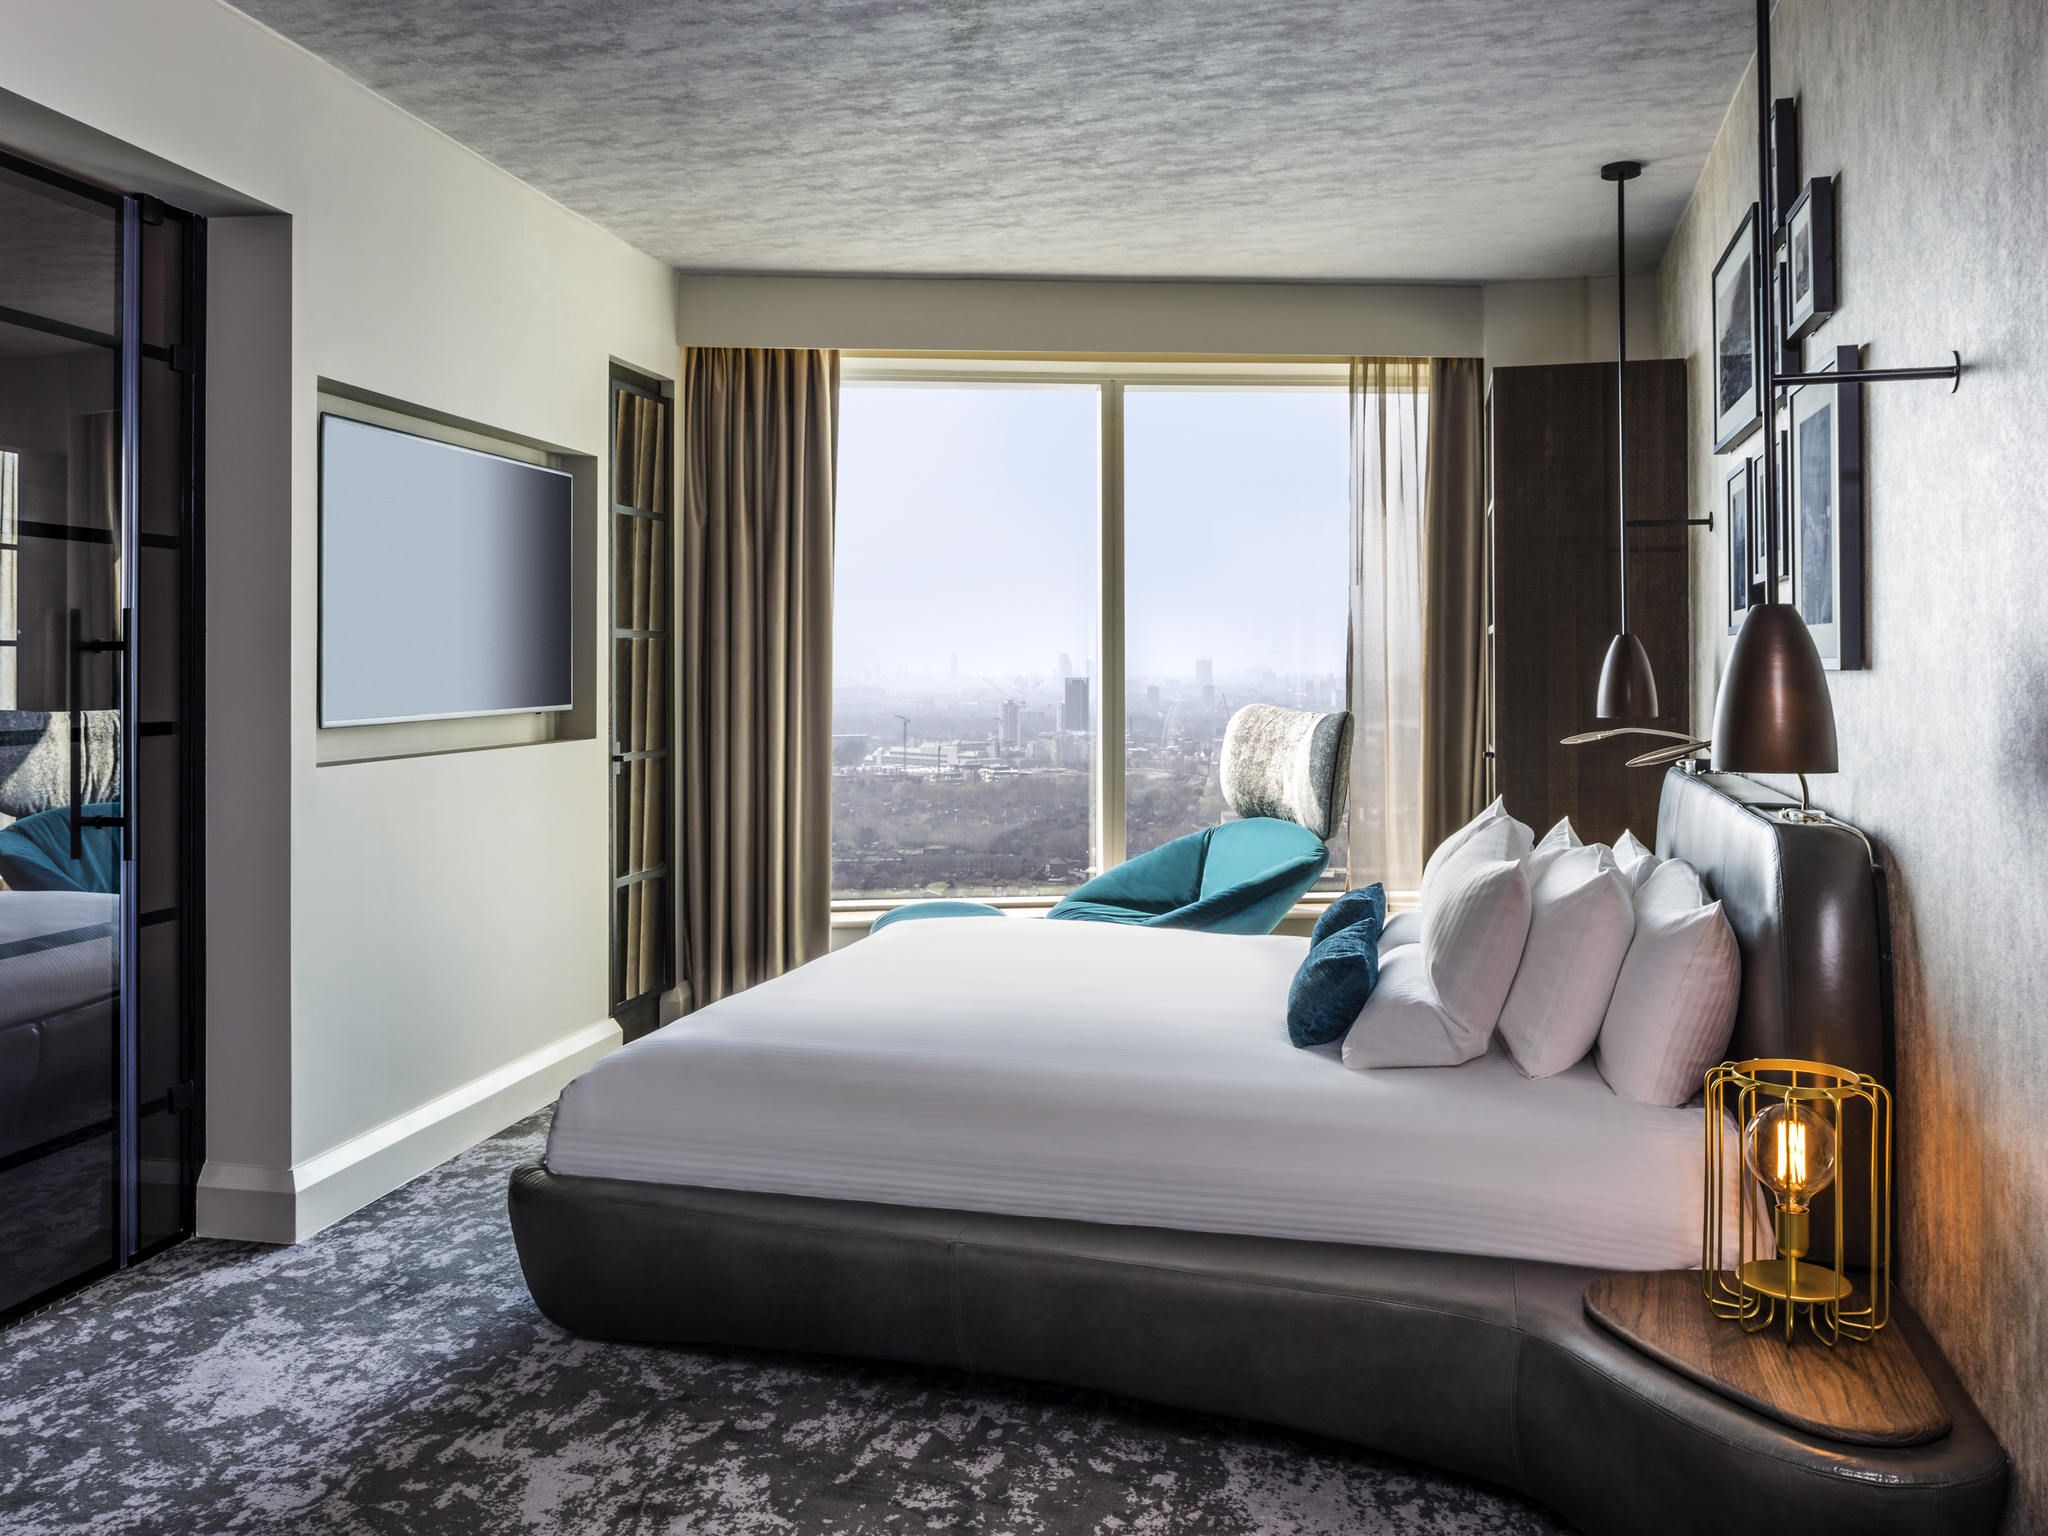 Hotel in london novotel london canary wharf now open for Hotel design canaries